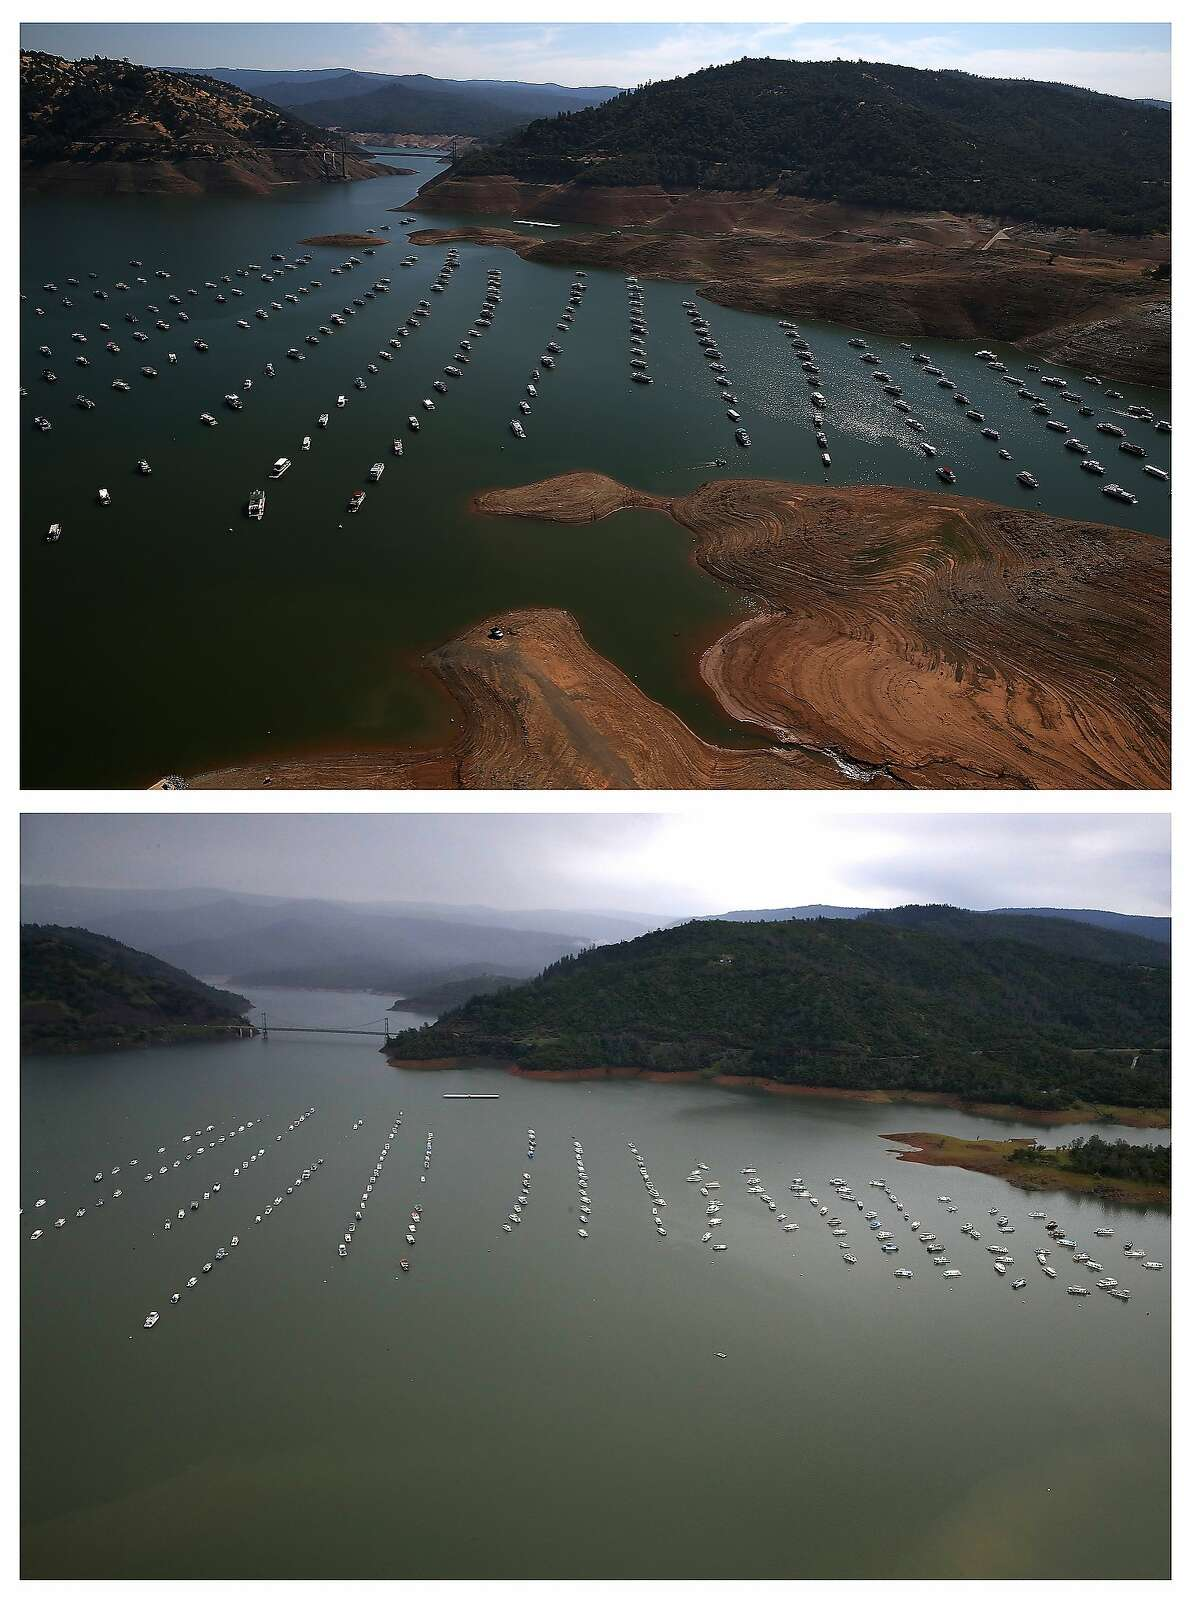 TOP: Bidwill Marina at Lake Oroville on August 19, 2014. BOTTOM: Bidwell Marina at Lake Oroville on April 11, 2017.